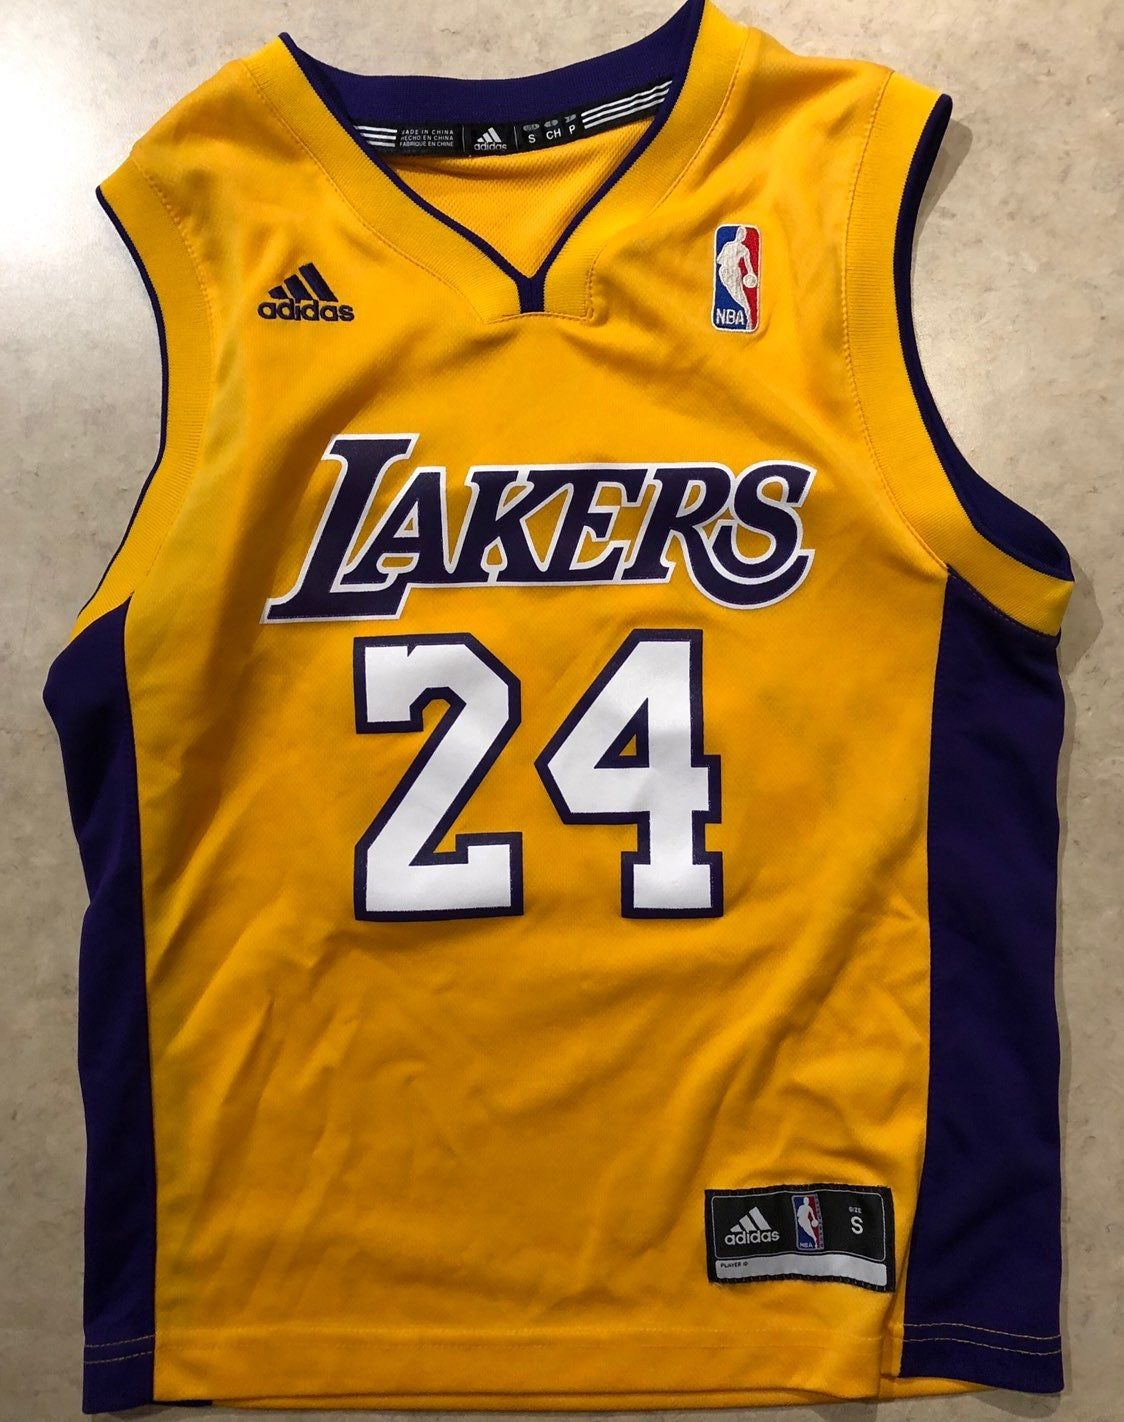 Adidas Screenprinted Boys Small La Lakers Kobe Bryant Boys Small Jersey Good Condition Kobe Bryant Lakers Kobe Lakers Kobe Bryant